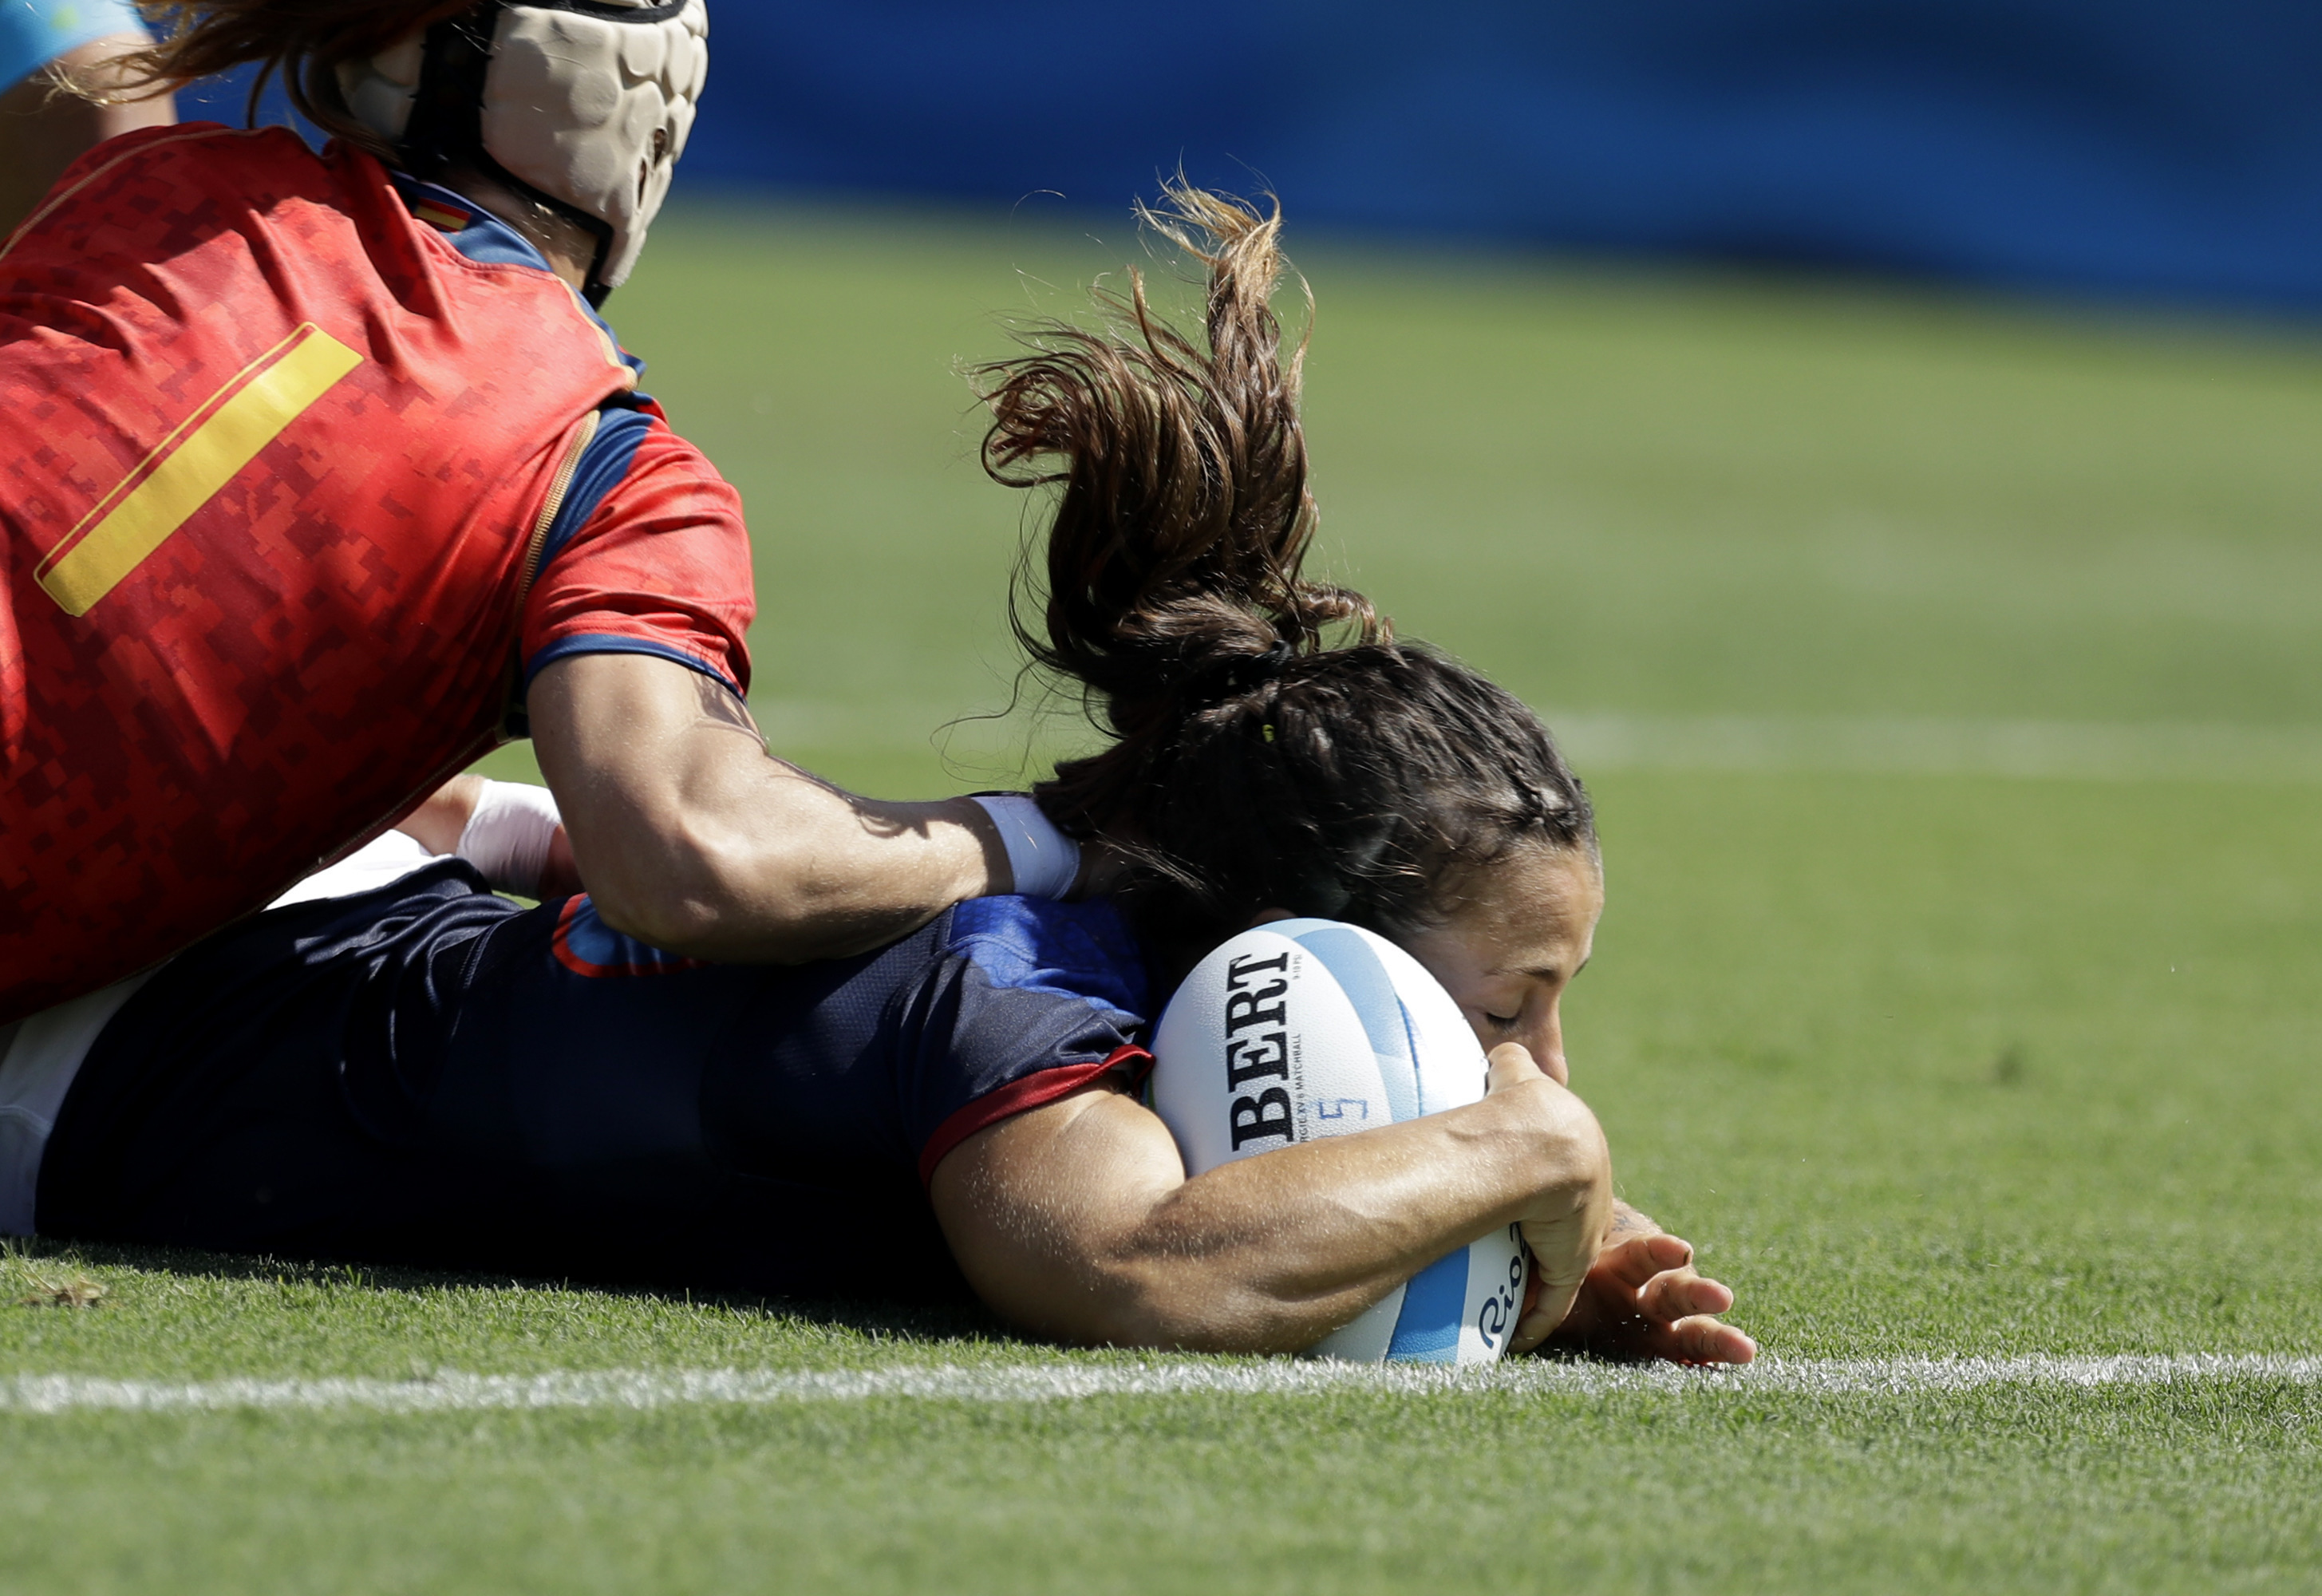 France's Elodie Guiglion, scores a try during the women's rugby sevens match between France and Spain at the Summer Olympics in Rio de Janeiro, Brazil, Saturday, Aug. 6, 2016. (AP Photo/Themba Hadebe)